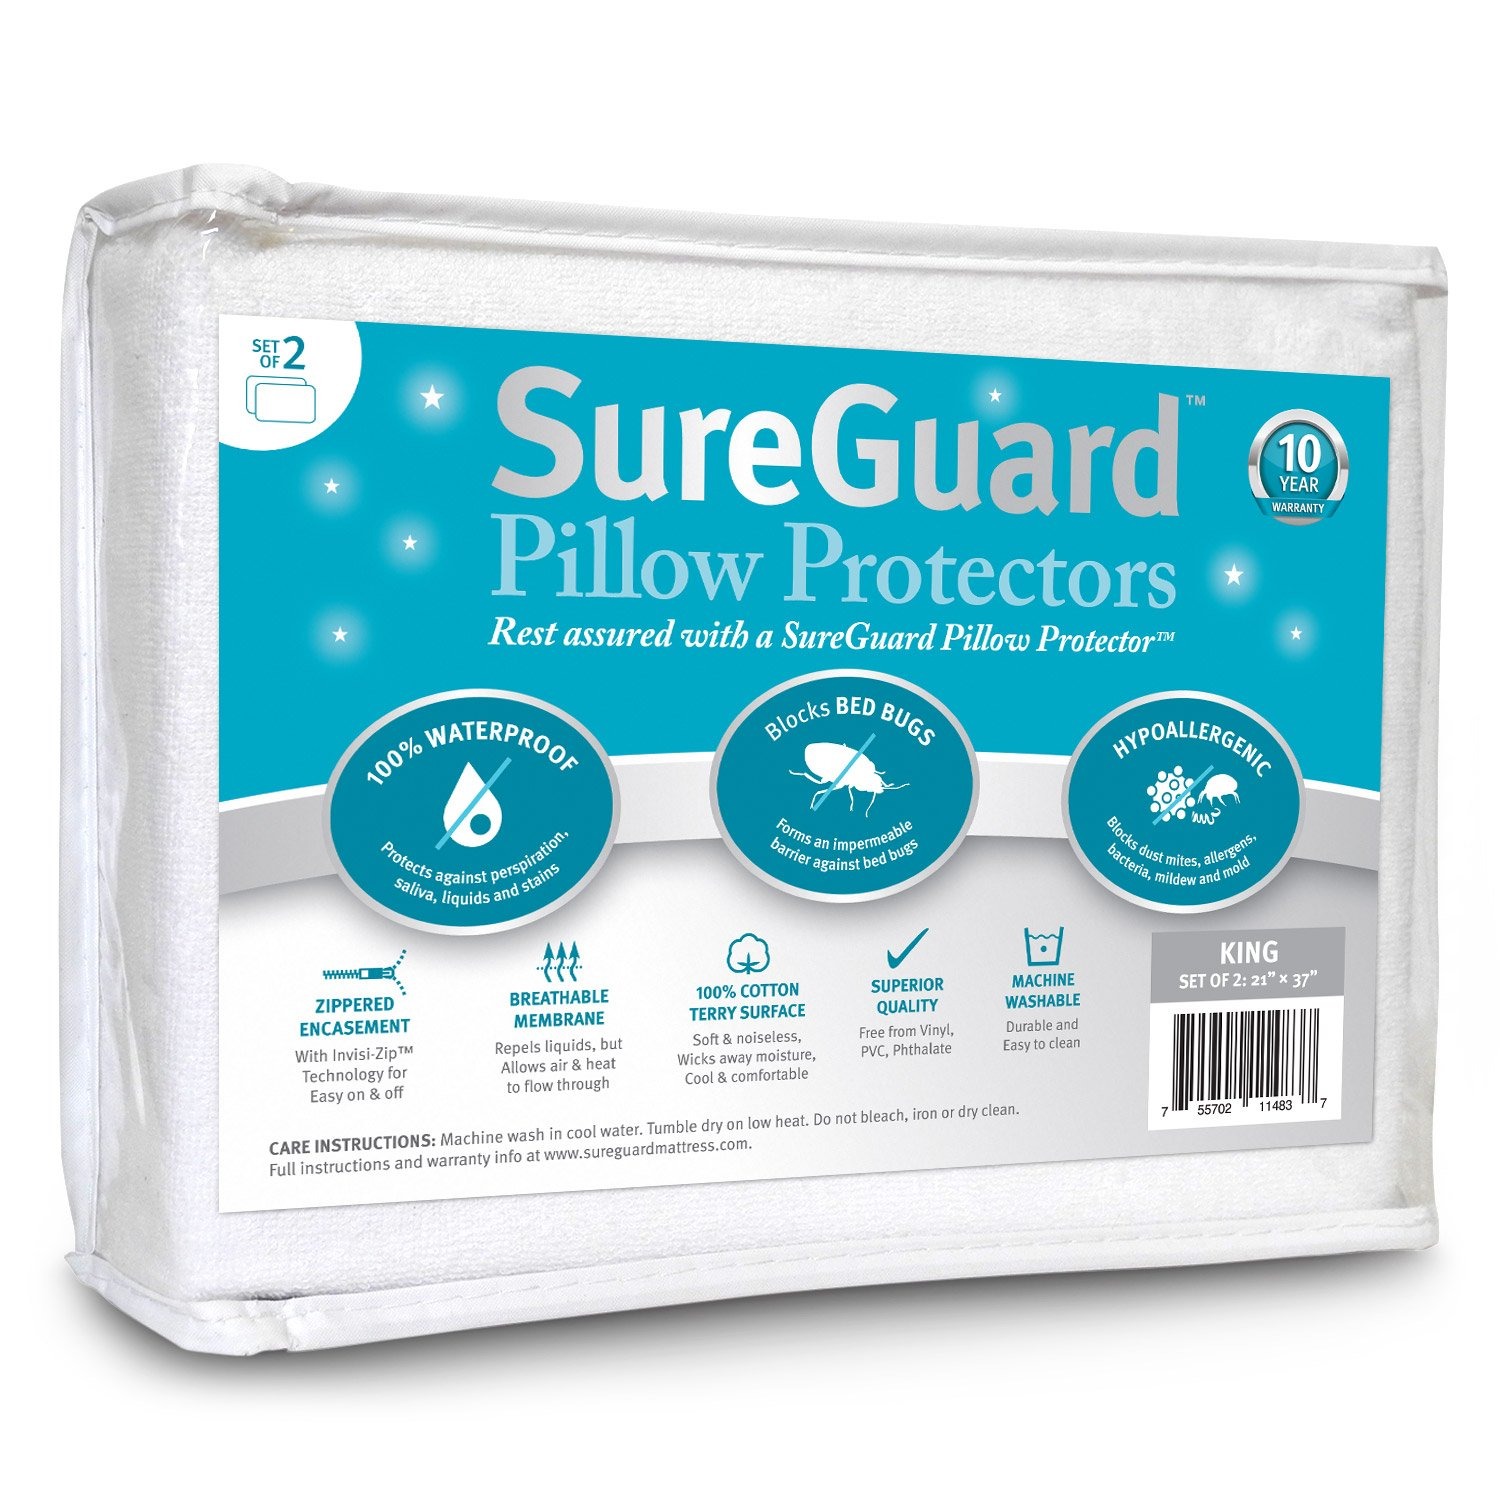 Set of 2 Body Size SureGuard Pillow Protectors - 100% Waterproof, Bed Bug Proof, Hypoallergenic - Premium Zippered Cotton Terry Covers - 10 Year Warranty SureGuard Mattress Protectors PILPRO-2PKB